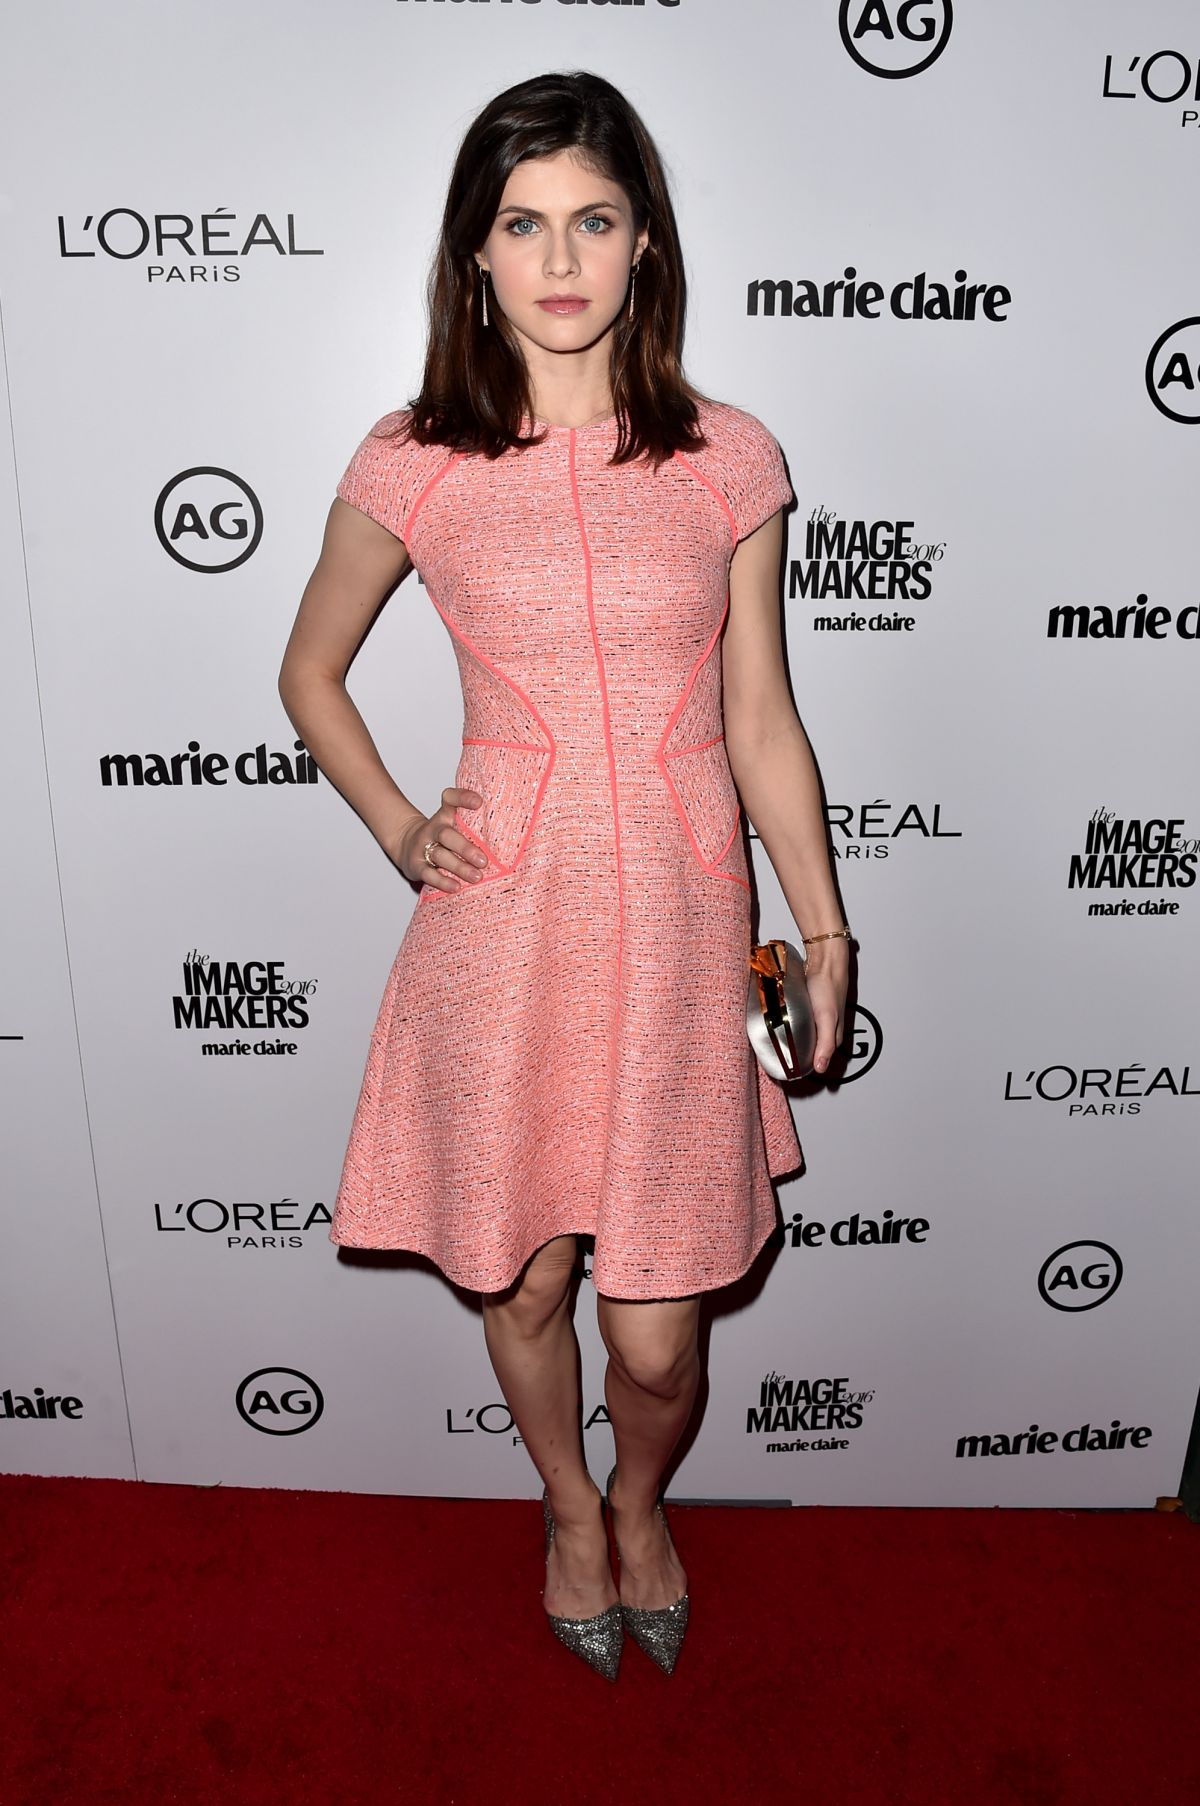 alexandra-daddario-at-2016-marie-claire-s-image-makers-awards-in-los-angeles-01-12-2016_1